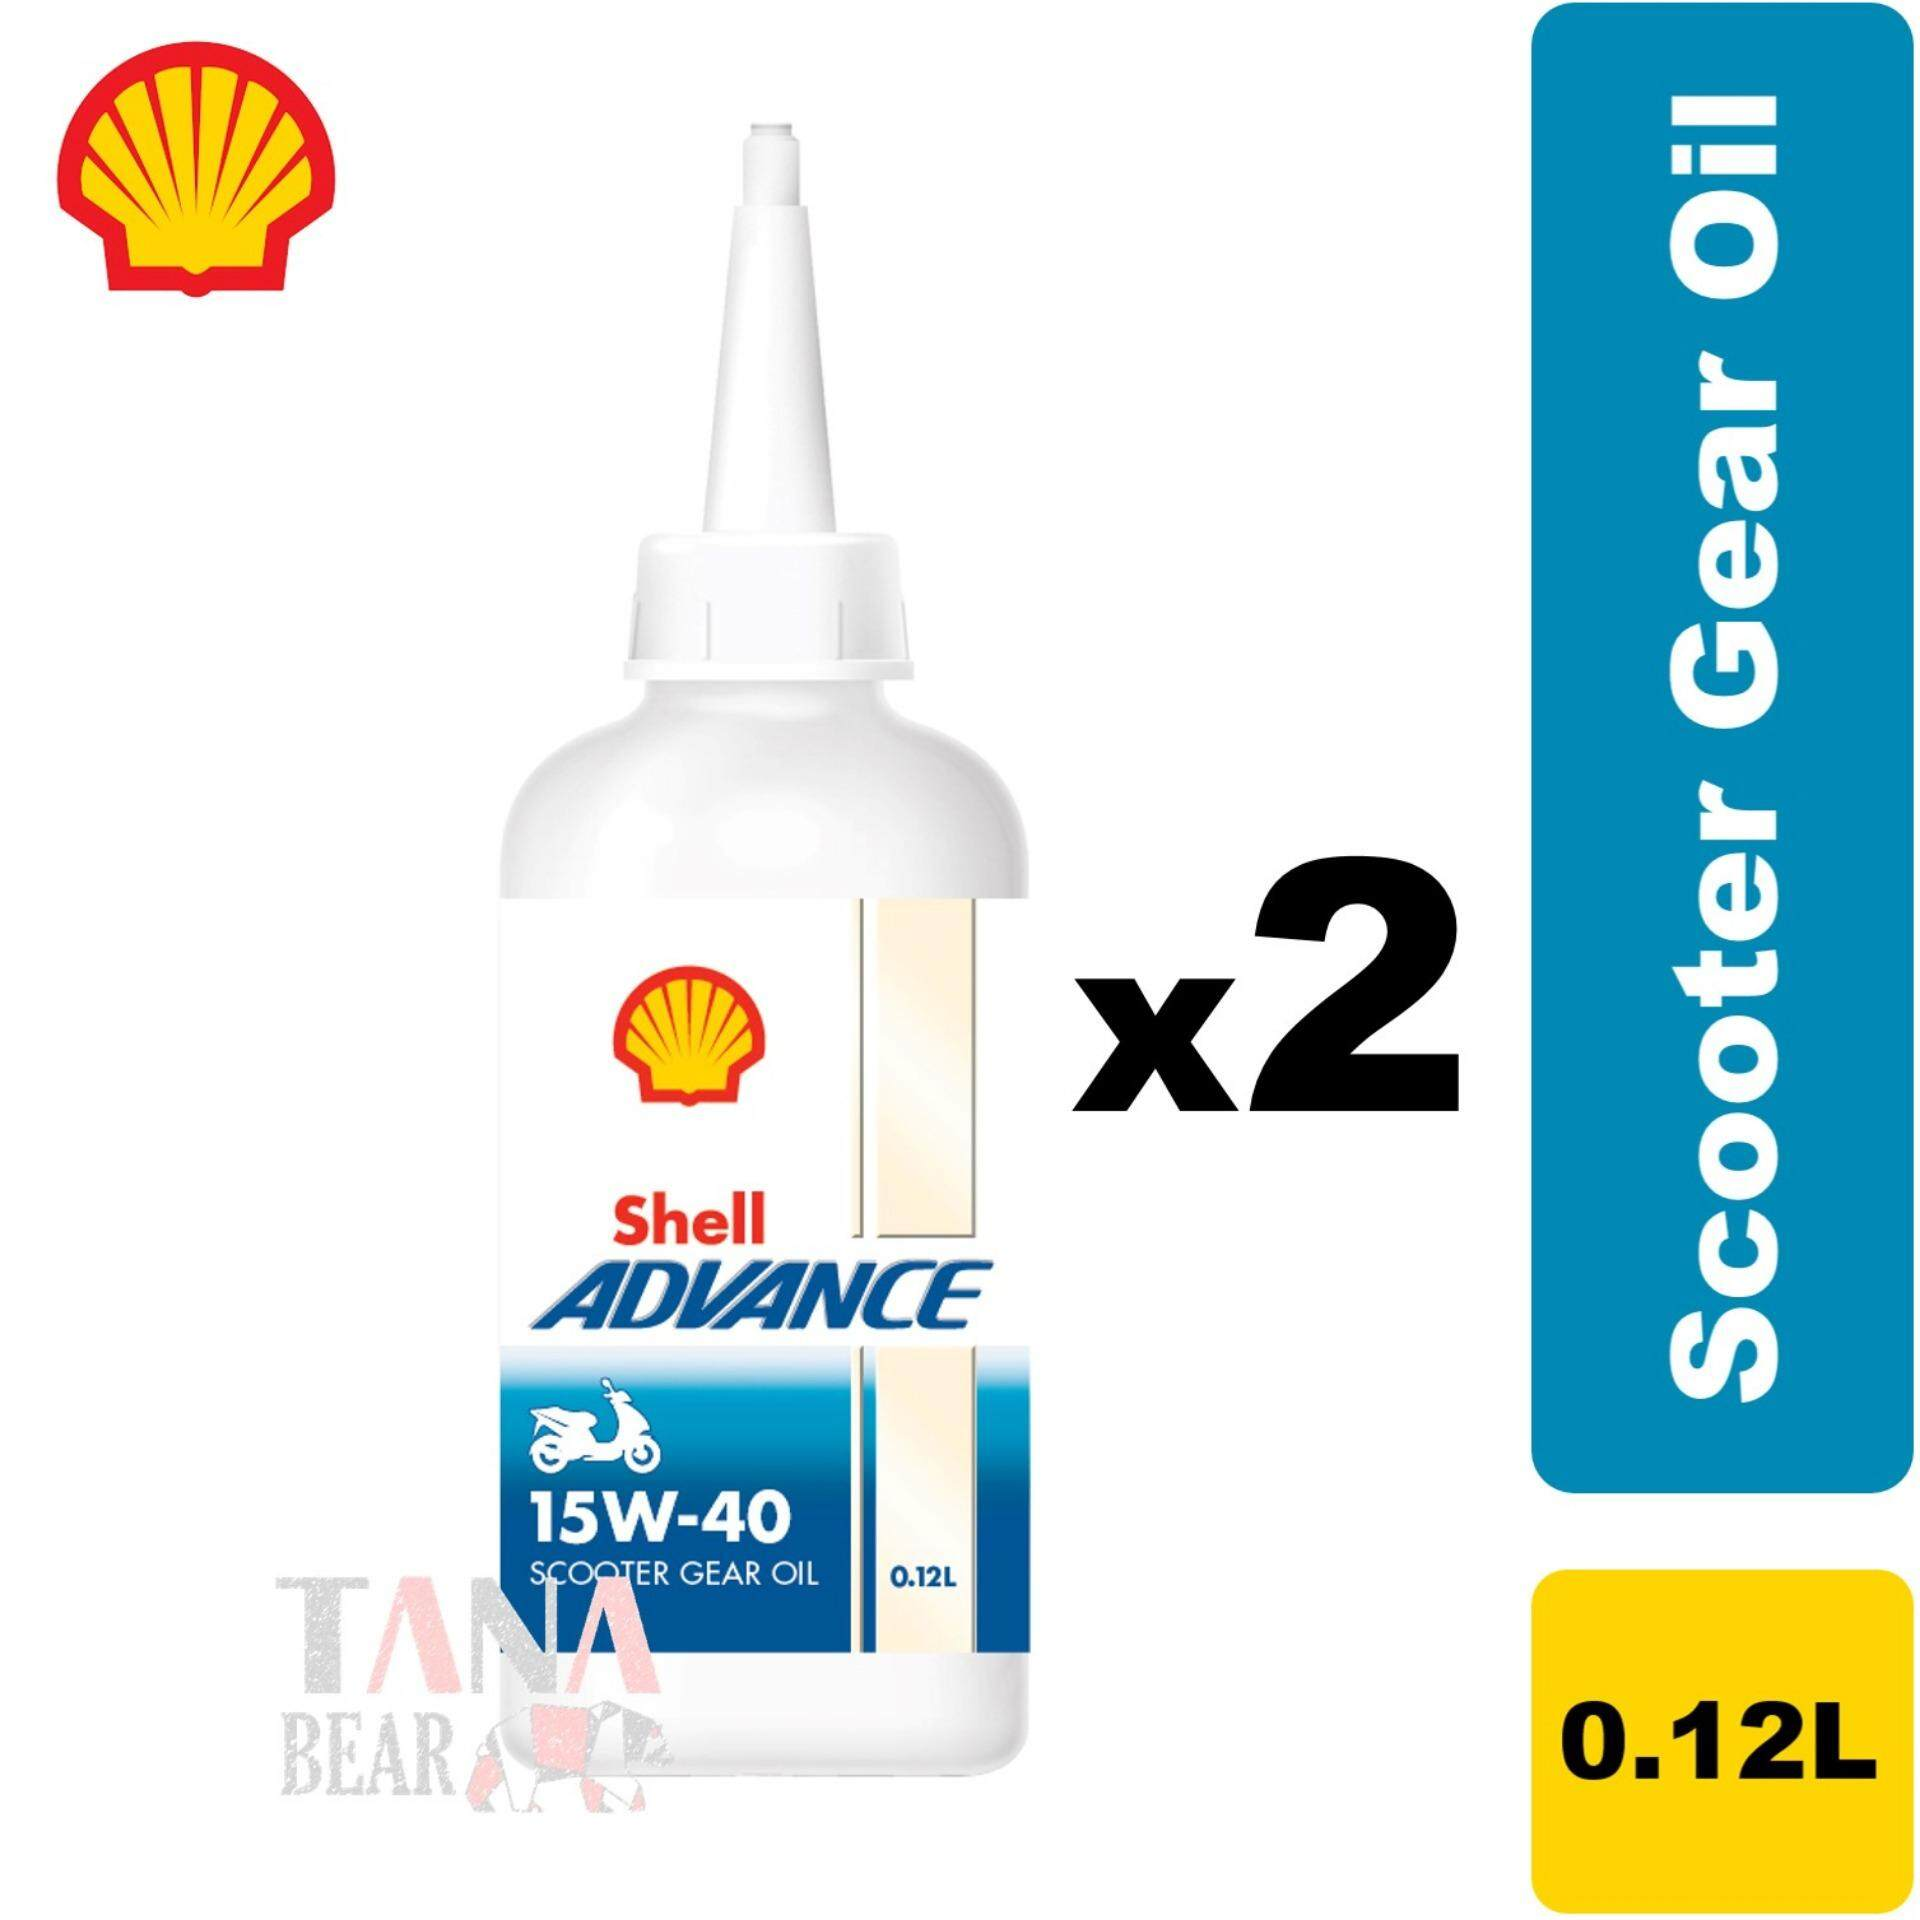 Shell Products For The Best Prices In Malaysia Helix Ultra 5w 40 Api Sn Cf Fully Synthetic Oil Pelumas Oli Mesin Mobil 4 Liter Gear Oils